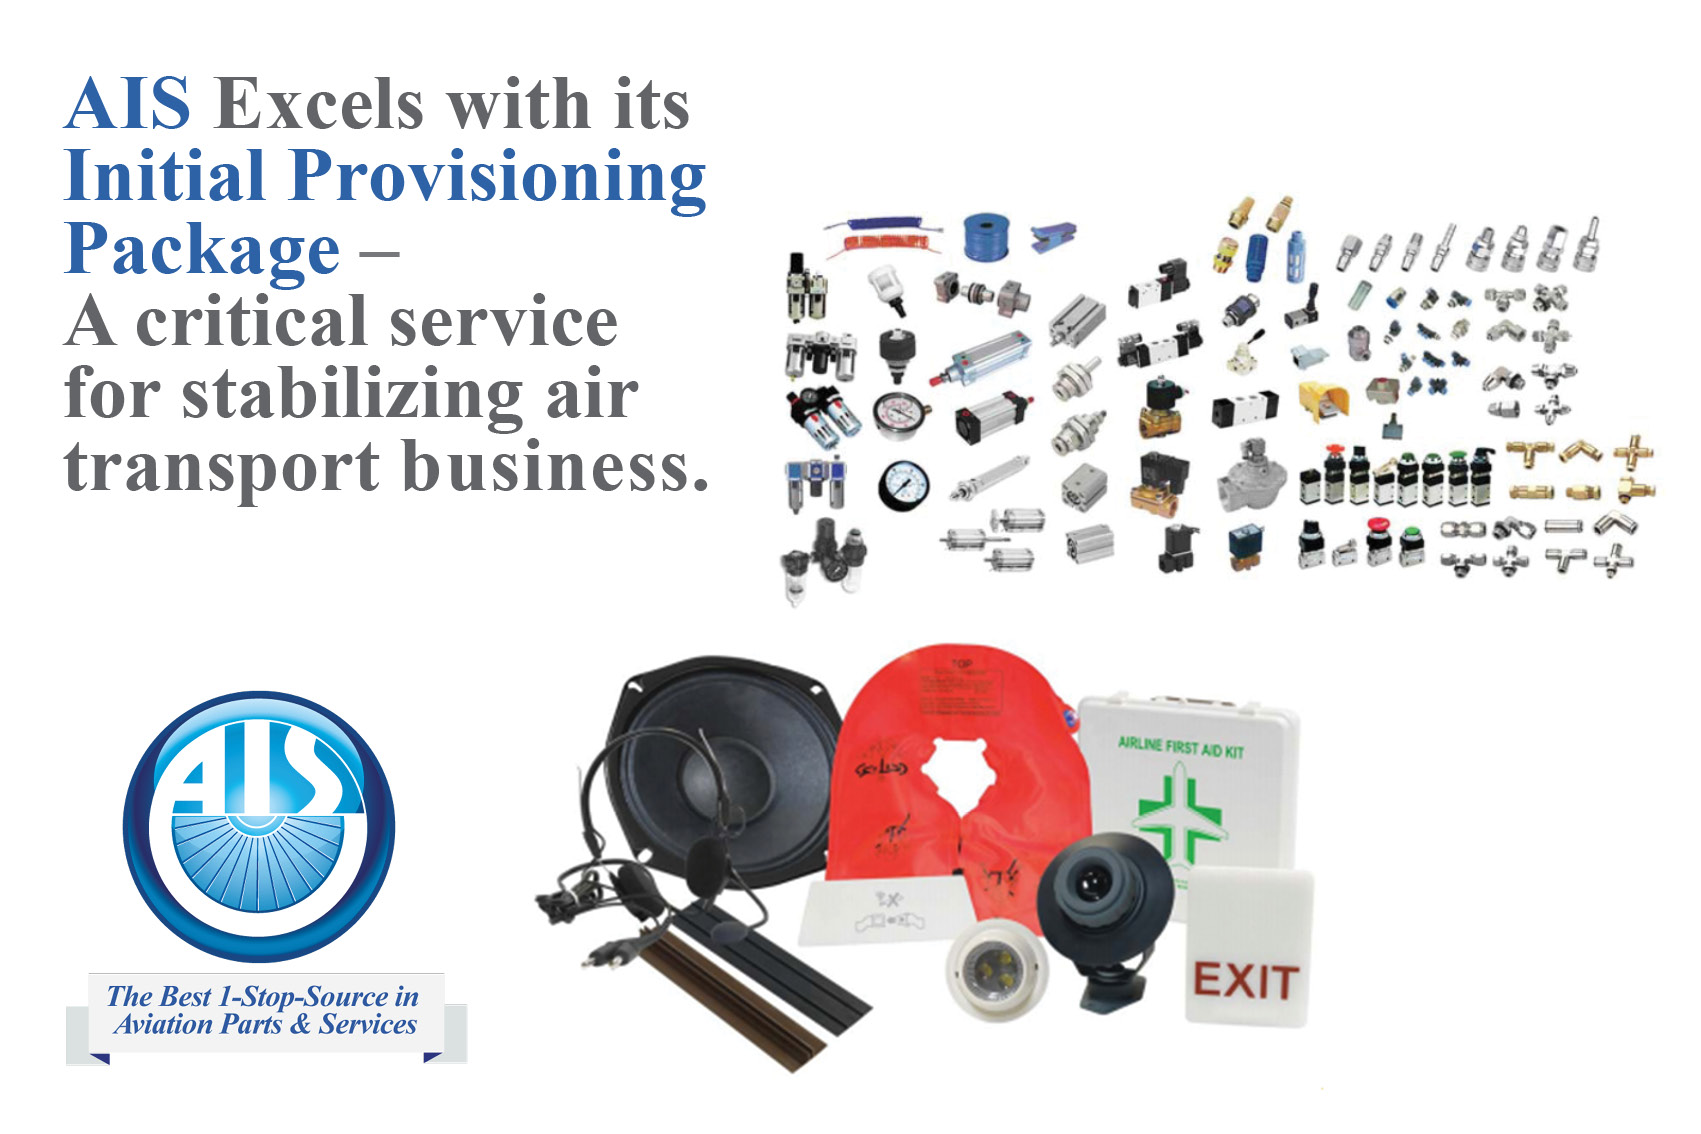 boeing's spare part marketplace   aviation spare parts spares and equipment for fixed and rotary wing aircraft boeing ah64 apache standard hardware an, ms, nas, m prefixed p/n's, electromechanical spares and semiconductors.